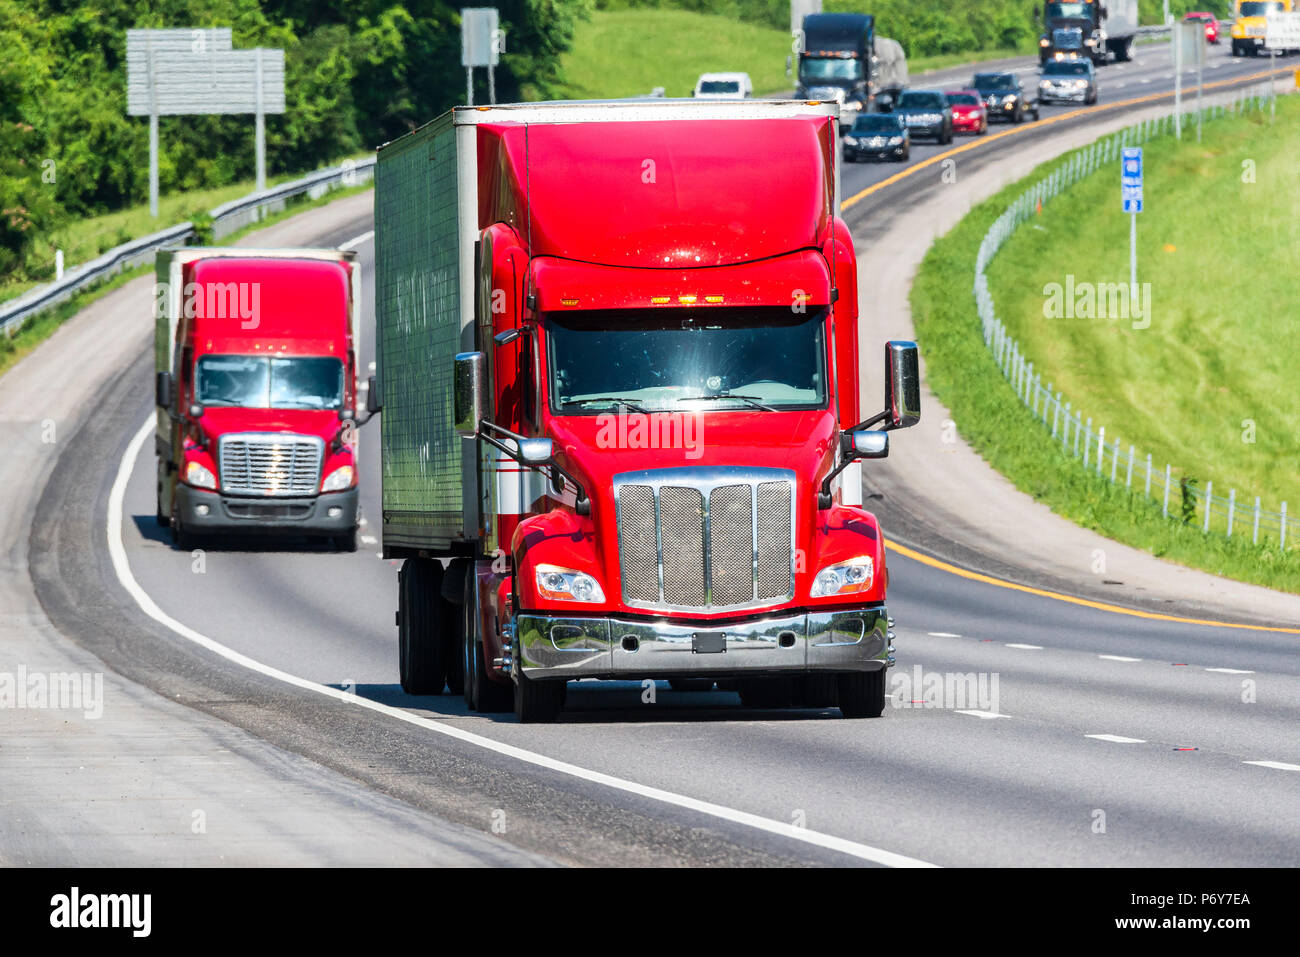 Two red trucks on a Tennessee interstate.  Image shot on hot day. Heat waves from asphalt create distortion, especially on vehicles farther from the c - Stock Image